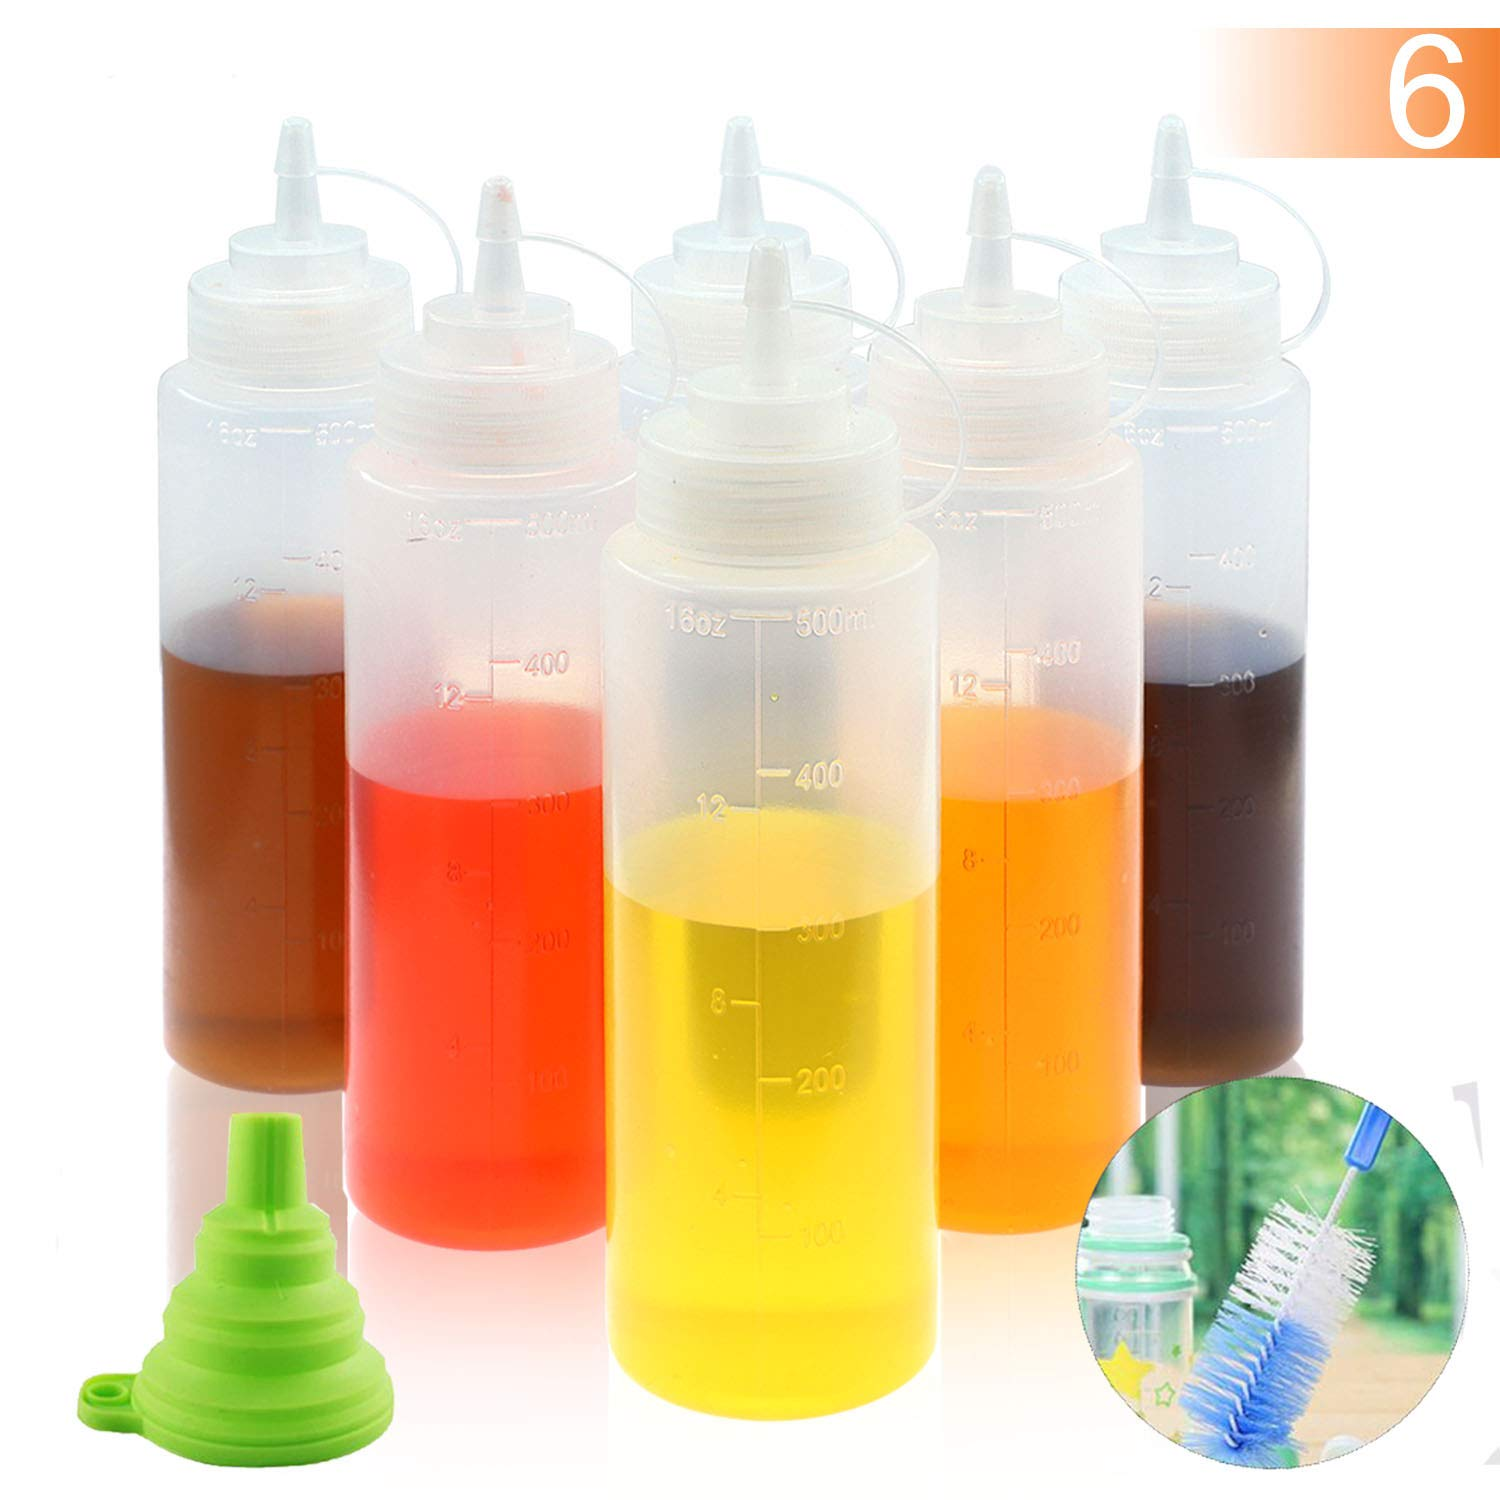 BAKHUK 6Pcs 16oz Plastic Clear Squeeze Condiment Bottle With Silicone Collapsible Funnel and Brush